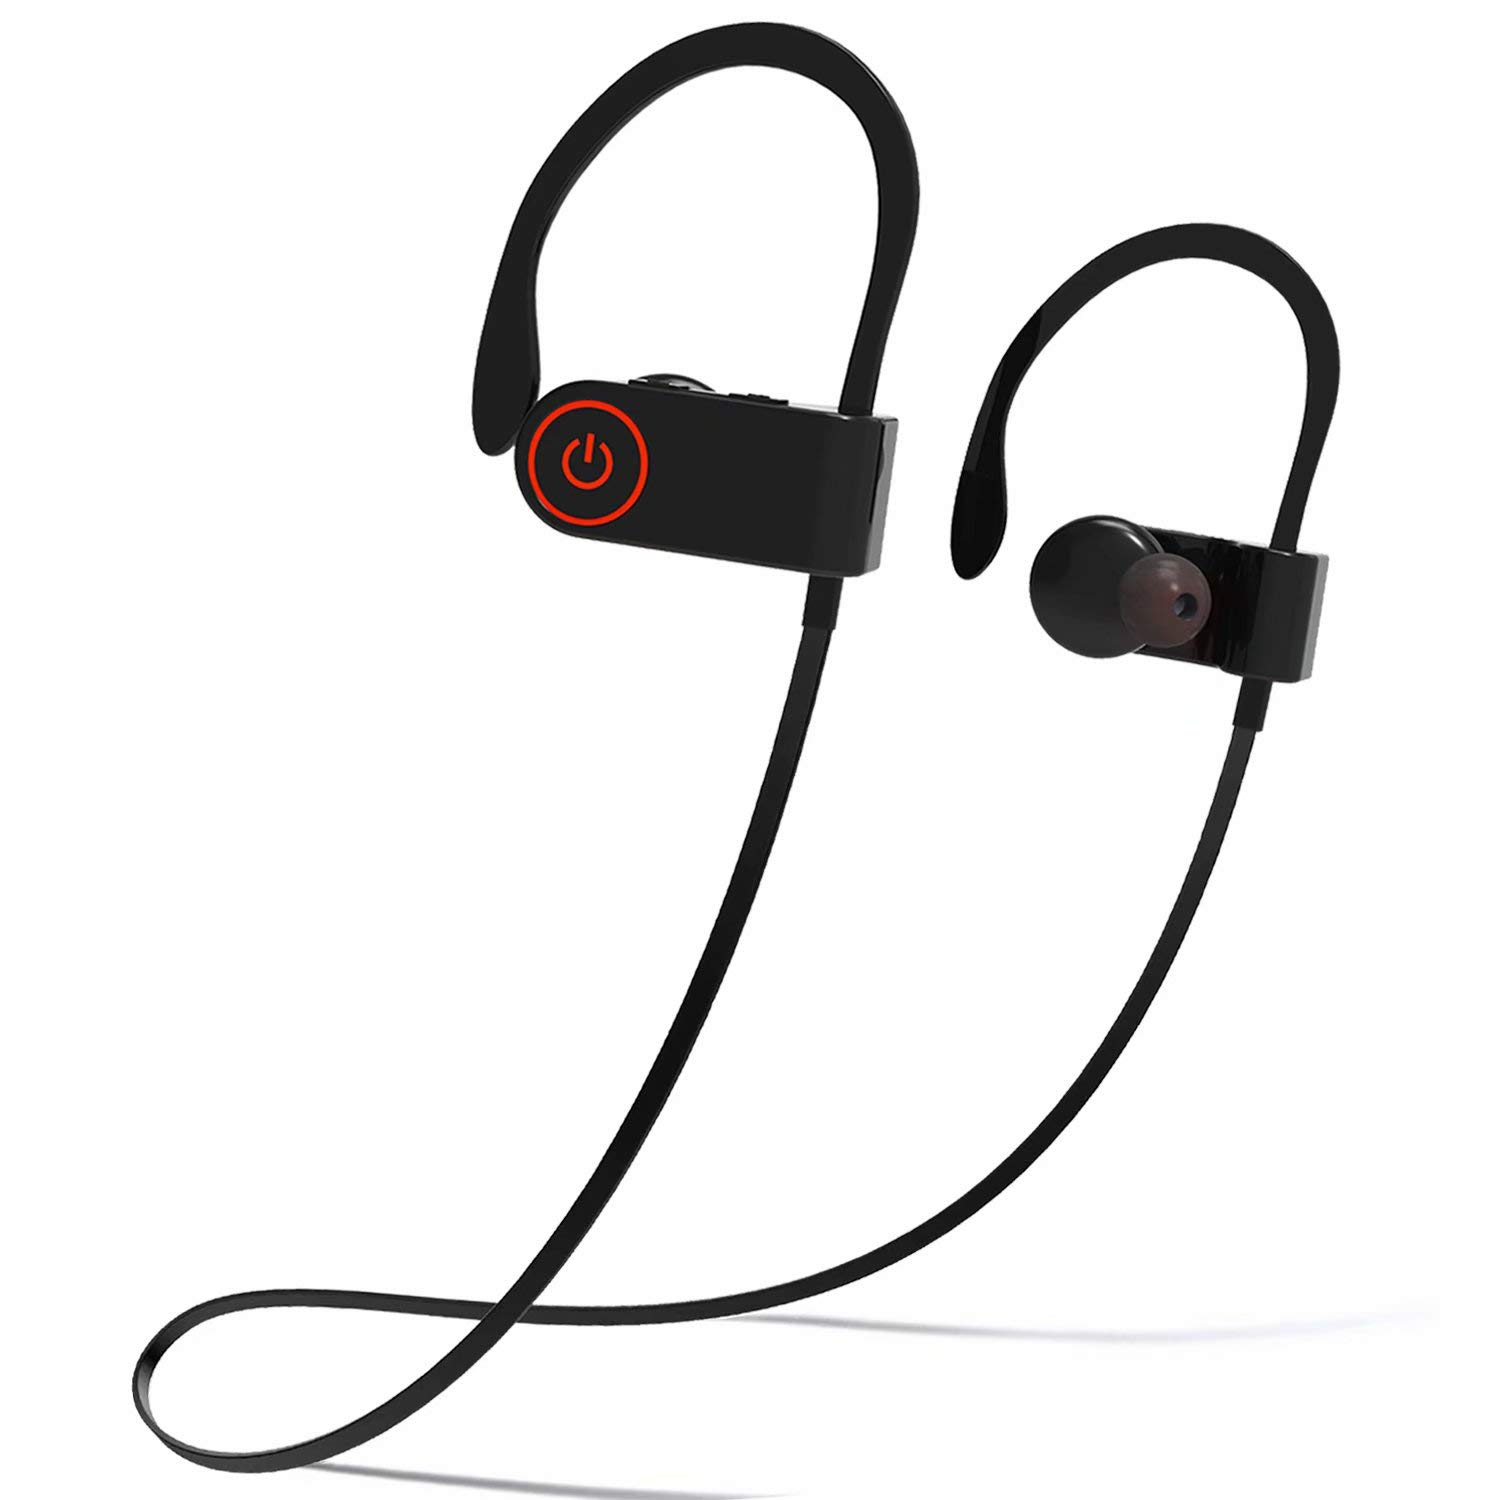 Bluetooth Headphones, Waterproof IPX6 Wireless Earbuds Sport, Richer Bass HiFi Stereo in-Ear Earphones w/Mic, Noise Isolating Headsets (Comfy & Fast Pairing) Secure Fit for Gym Running Workout, Black